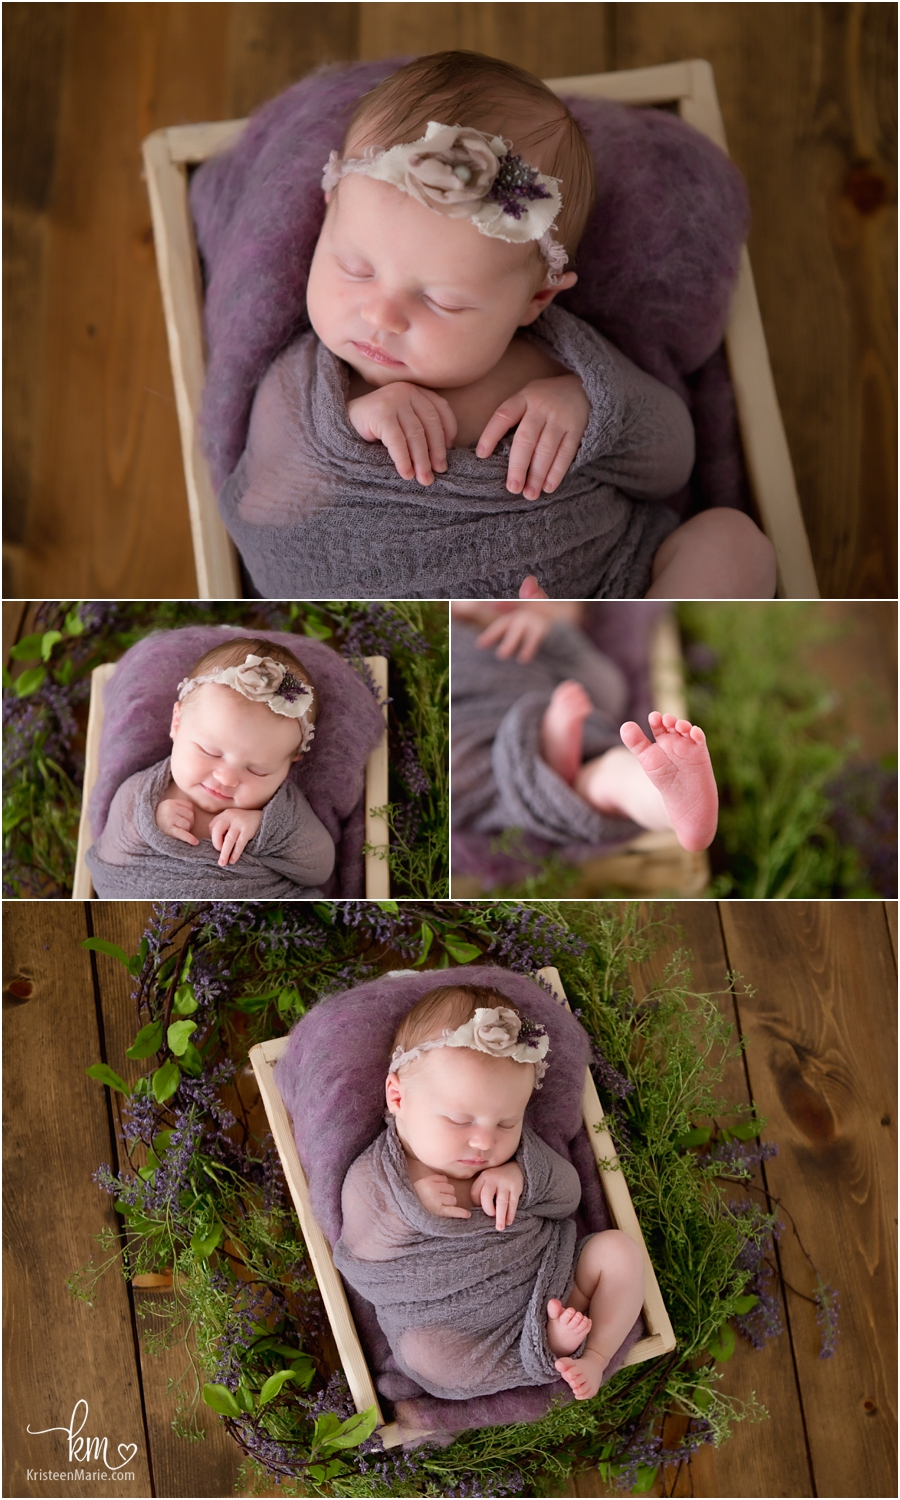 newborn phorography - baby in purple with flowers - purple and green rustic newborn photography